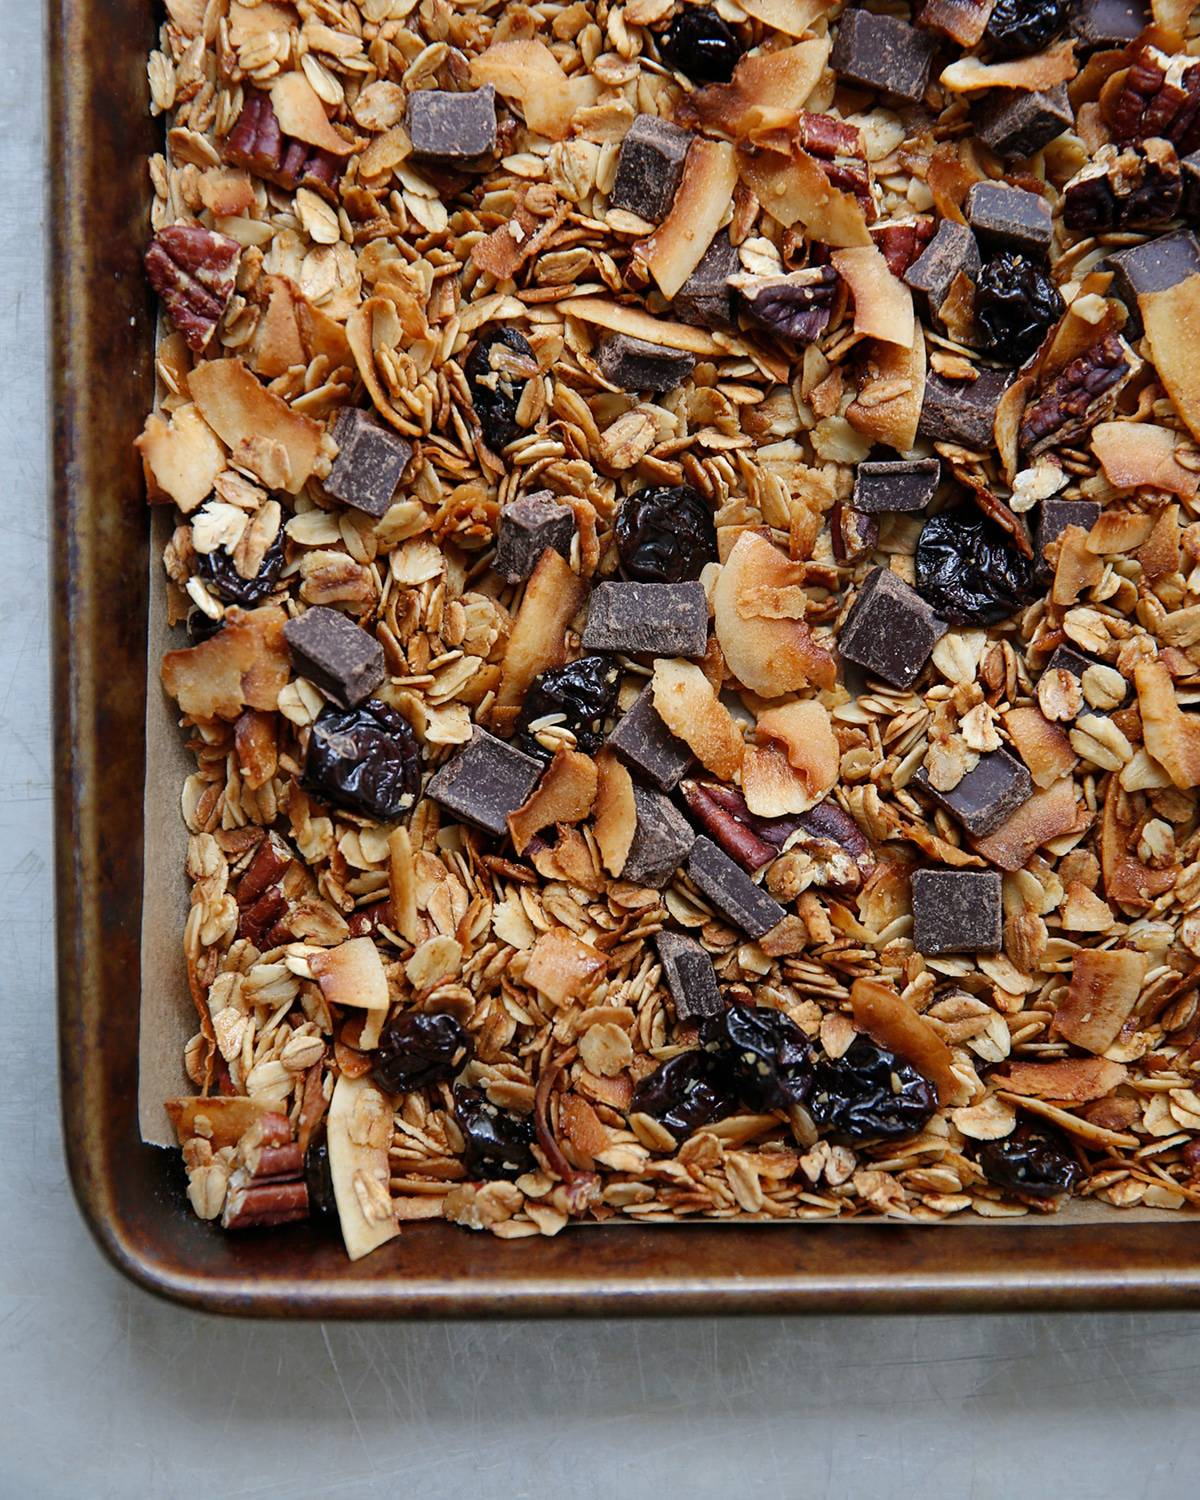 How do you preserve homemade granola